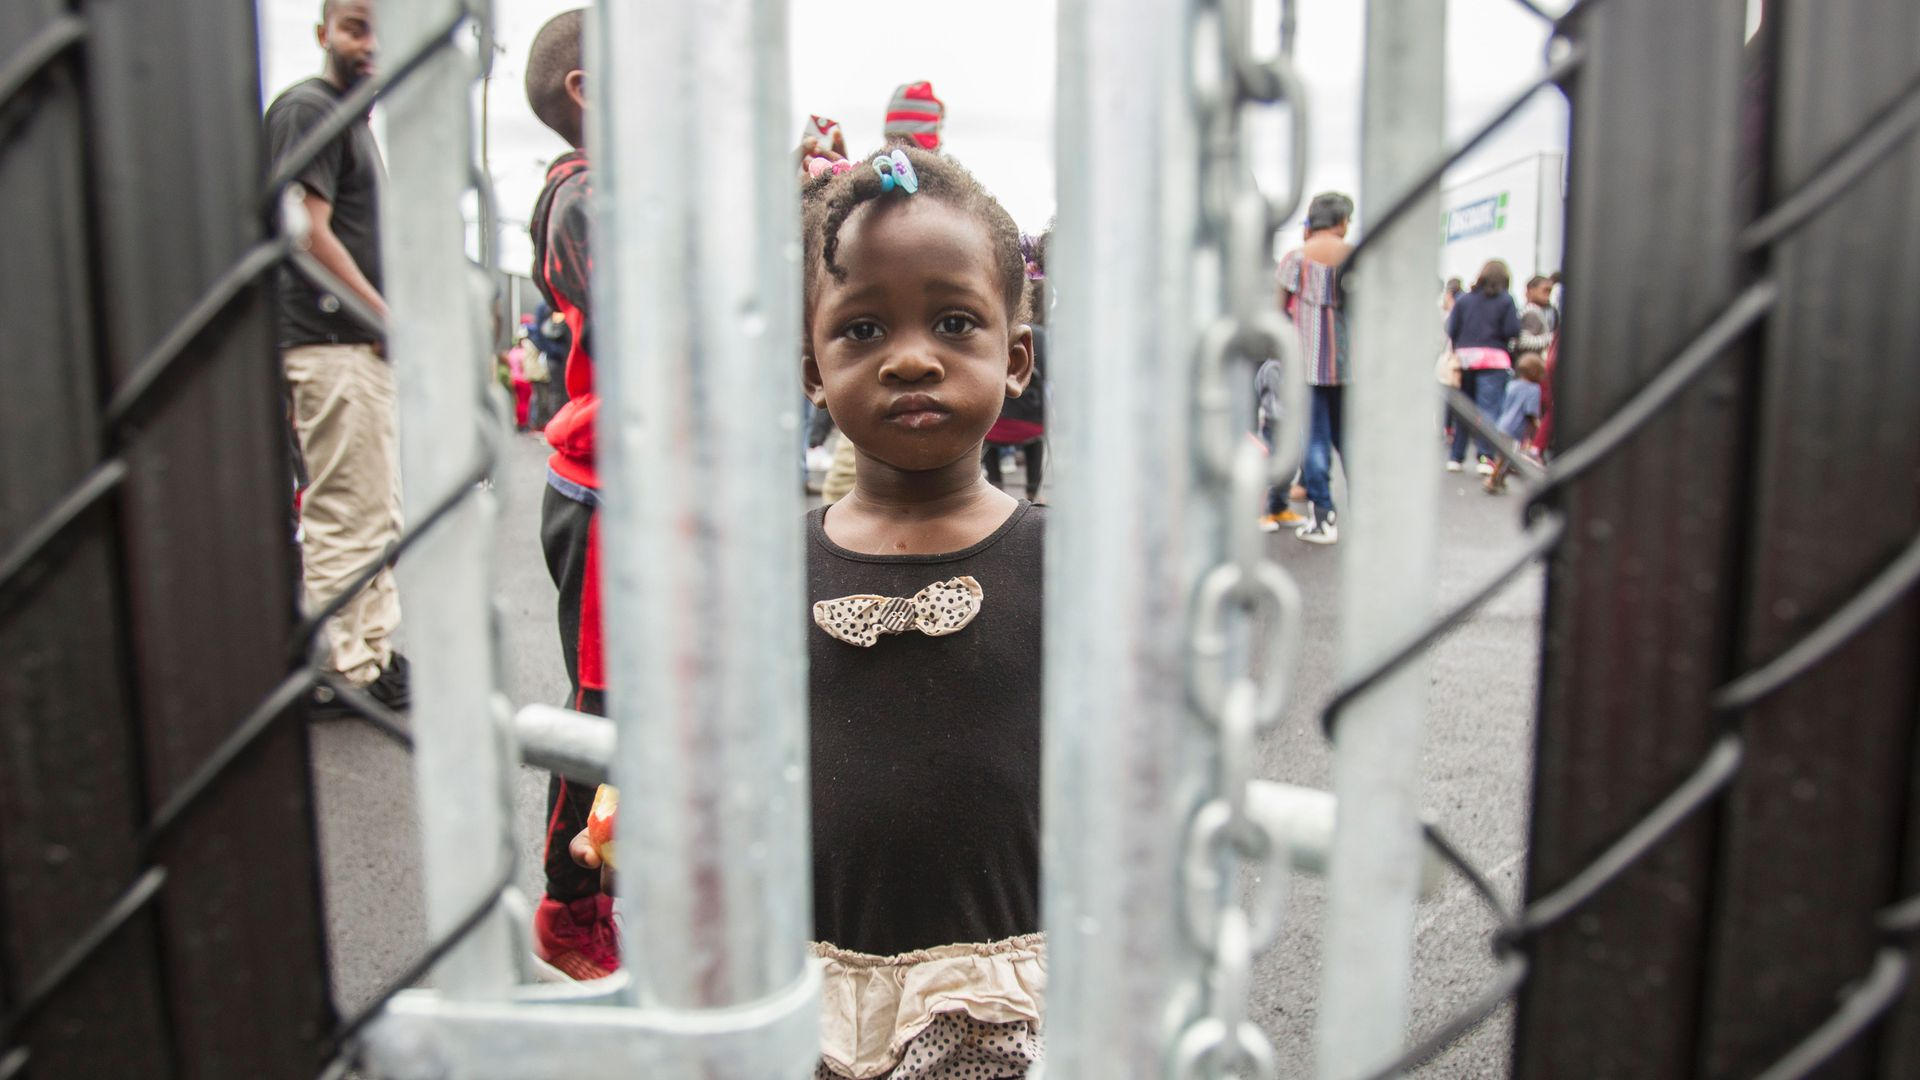 Little black girl with pink bows looks through chain linked fence with a frown.